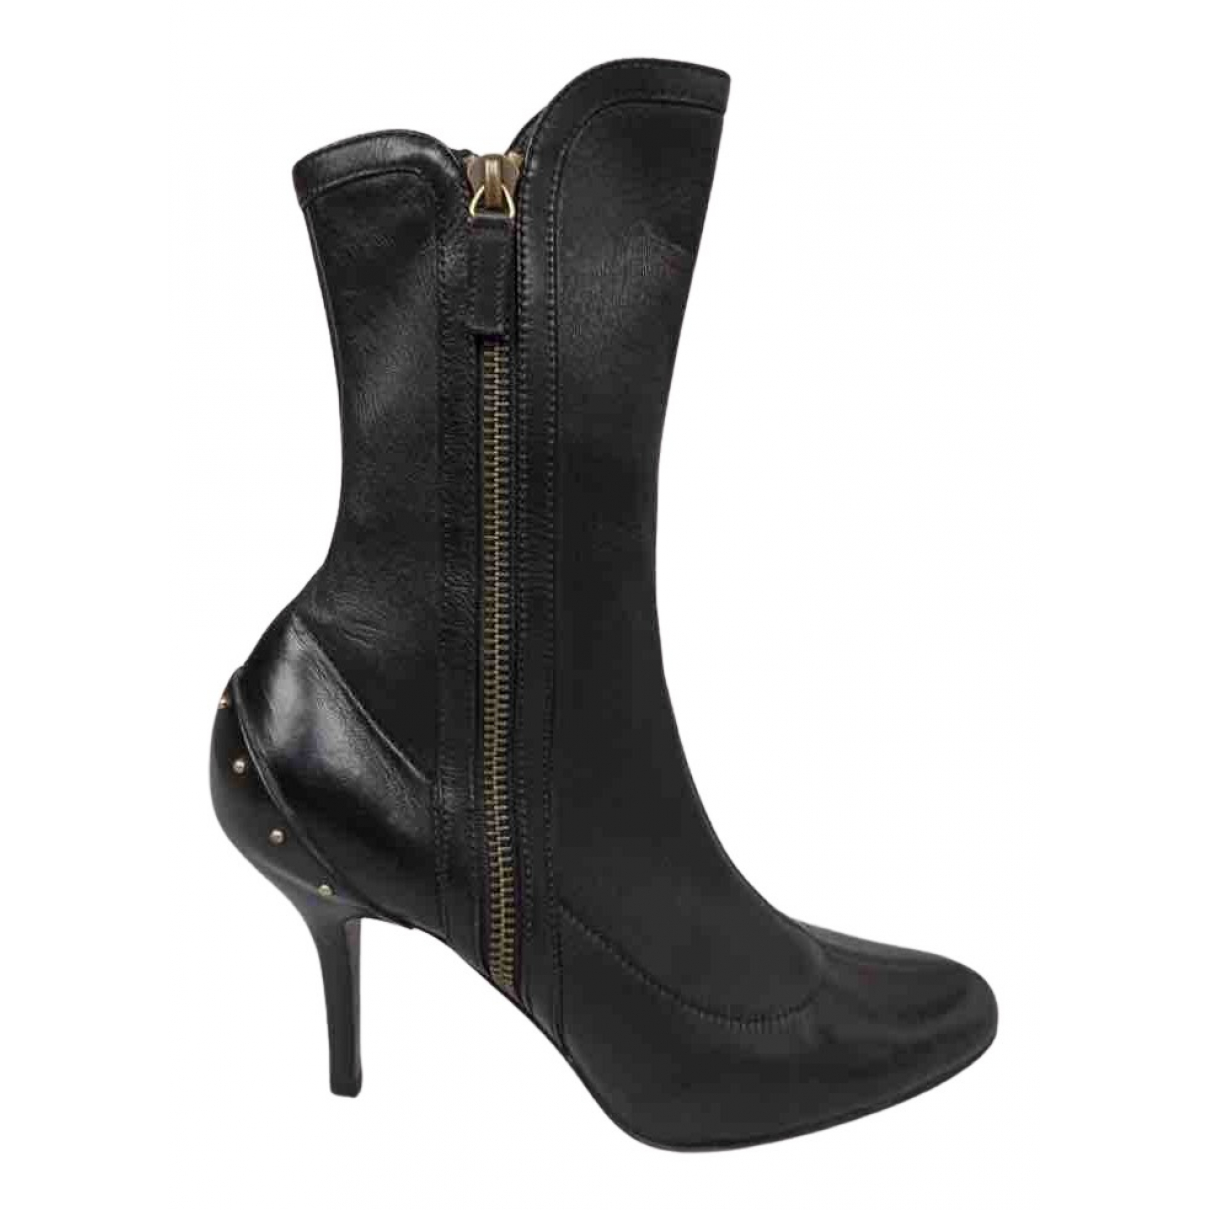 Gucci N Black Leather Boots for Women 36 EU